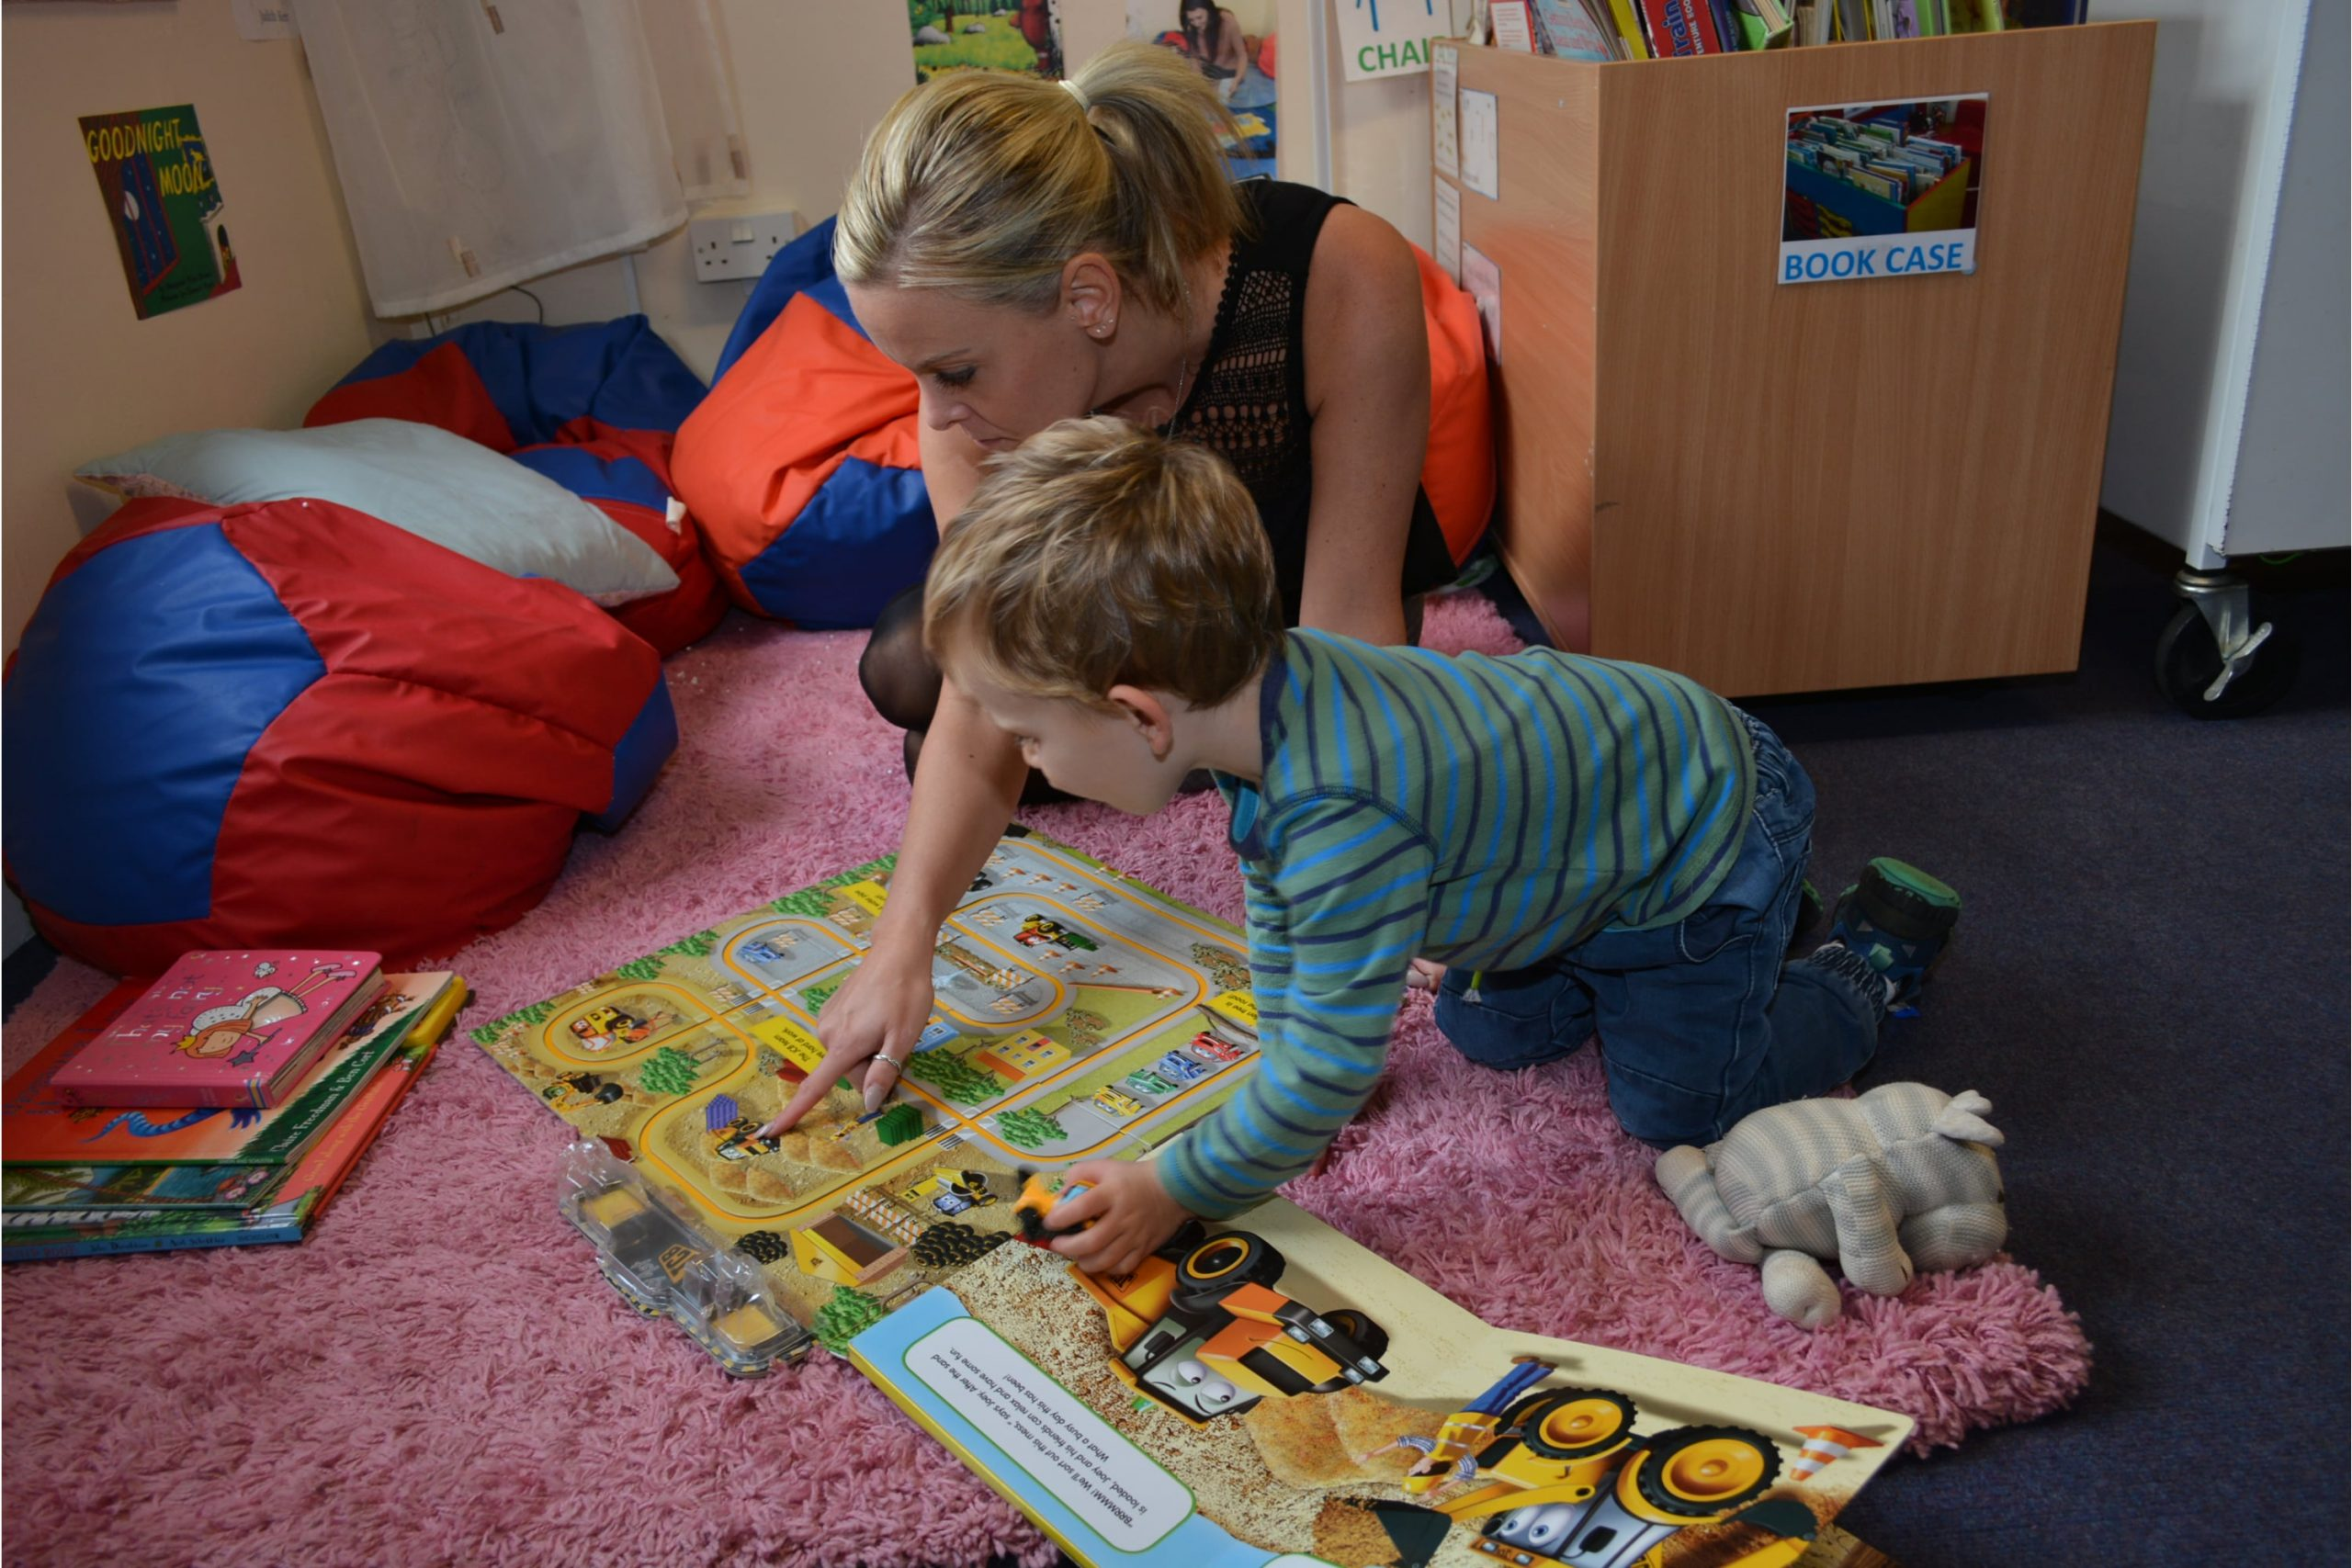 Sixth Form student on childcare placement